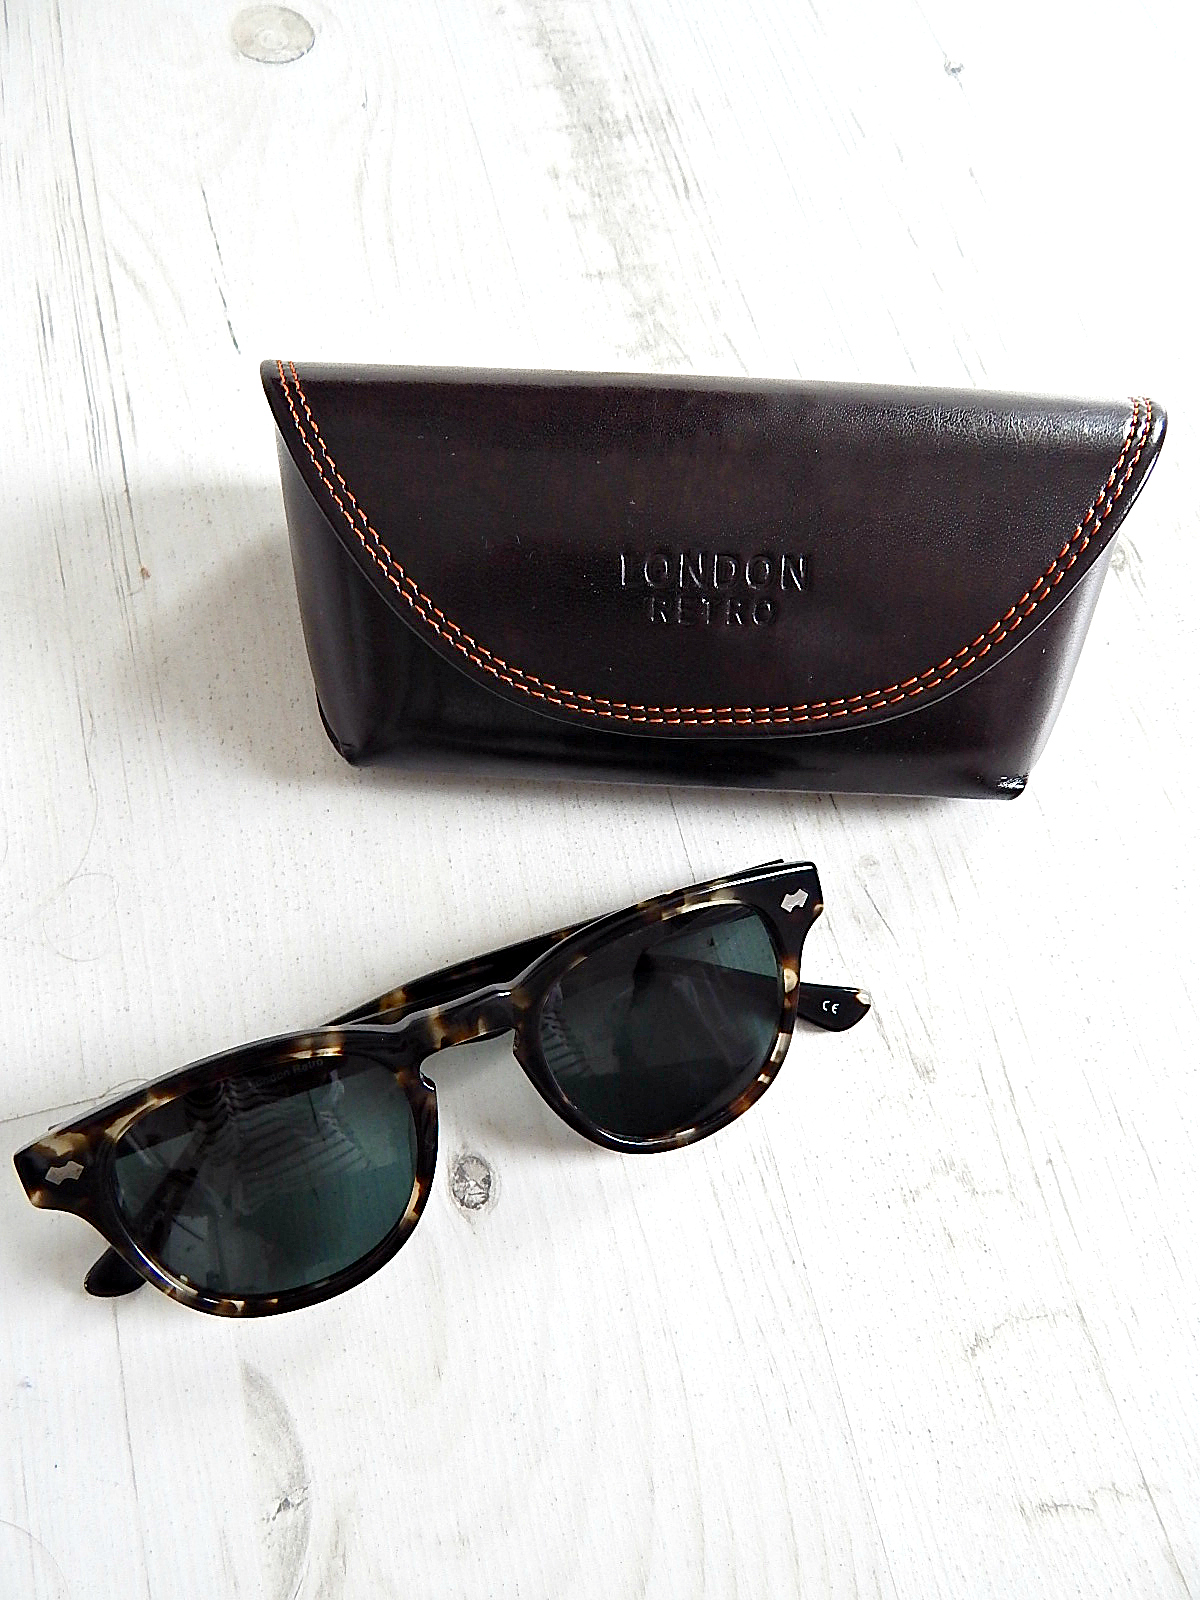 london retro reggie glasses review sunglasses shop